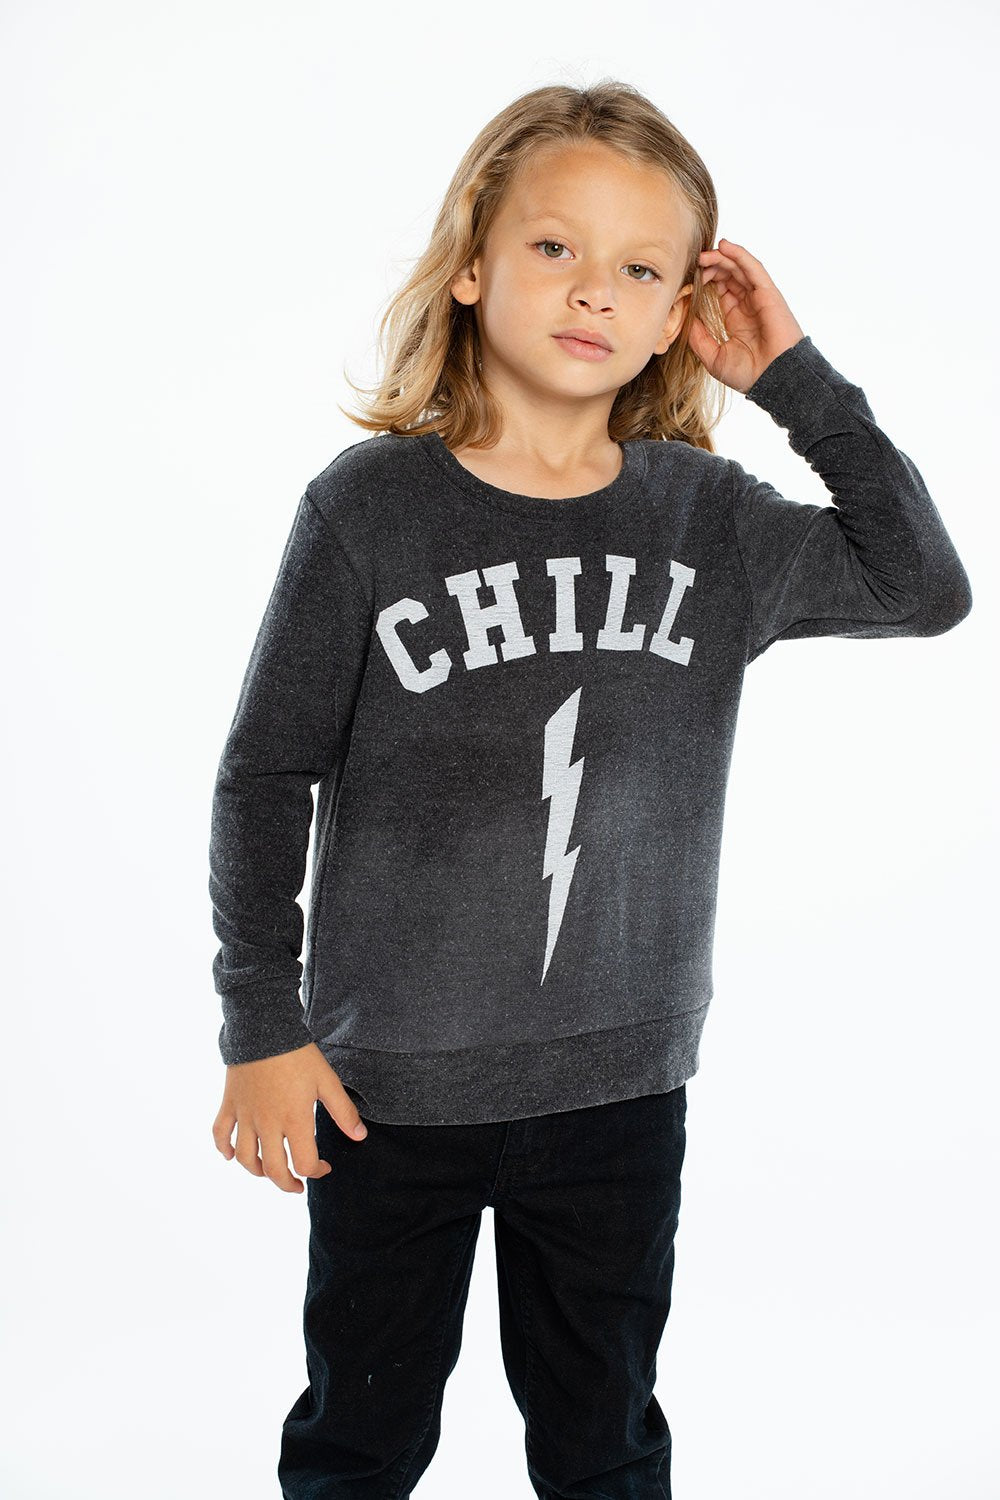 Chaser Kids Chill Boys Cozy Knit L/S Crew Neck Pullover Sweater - Black - Ella J Boutique